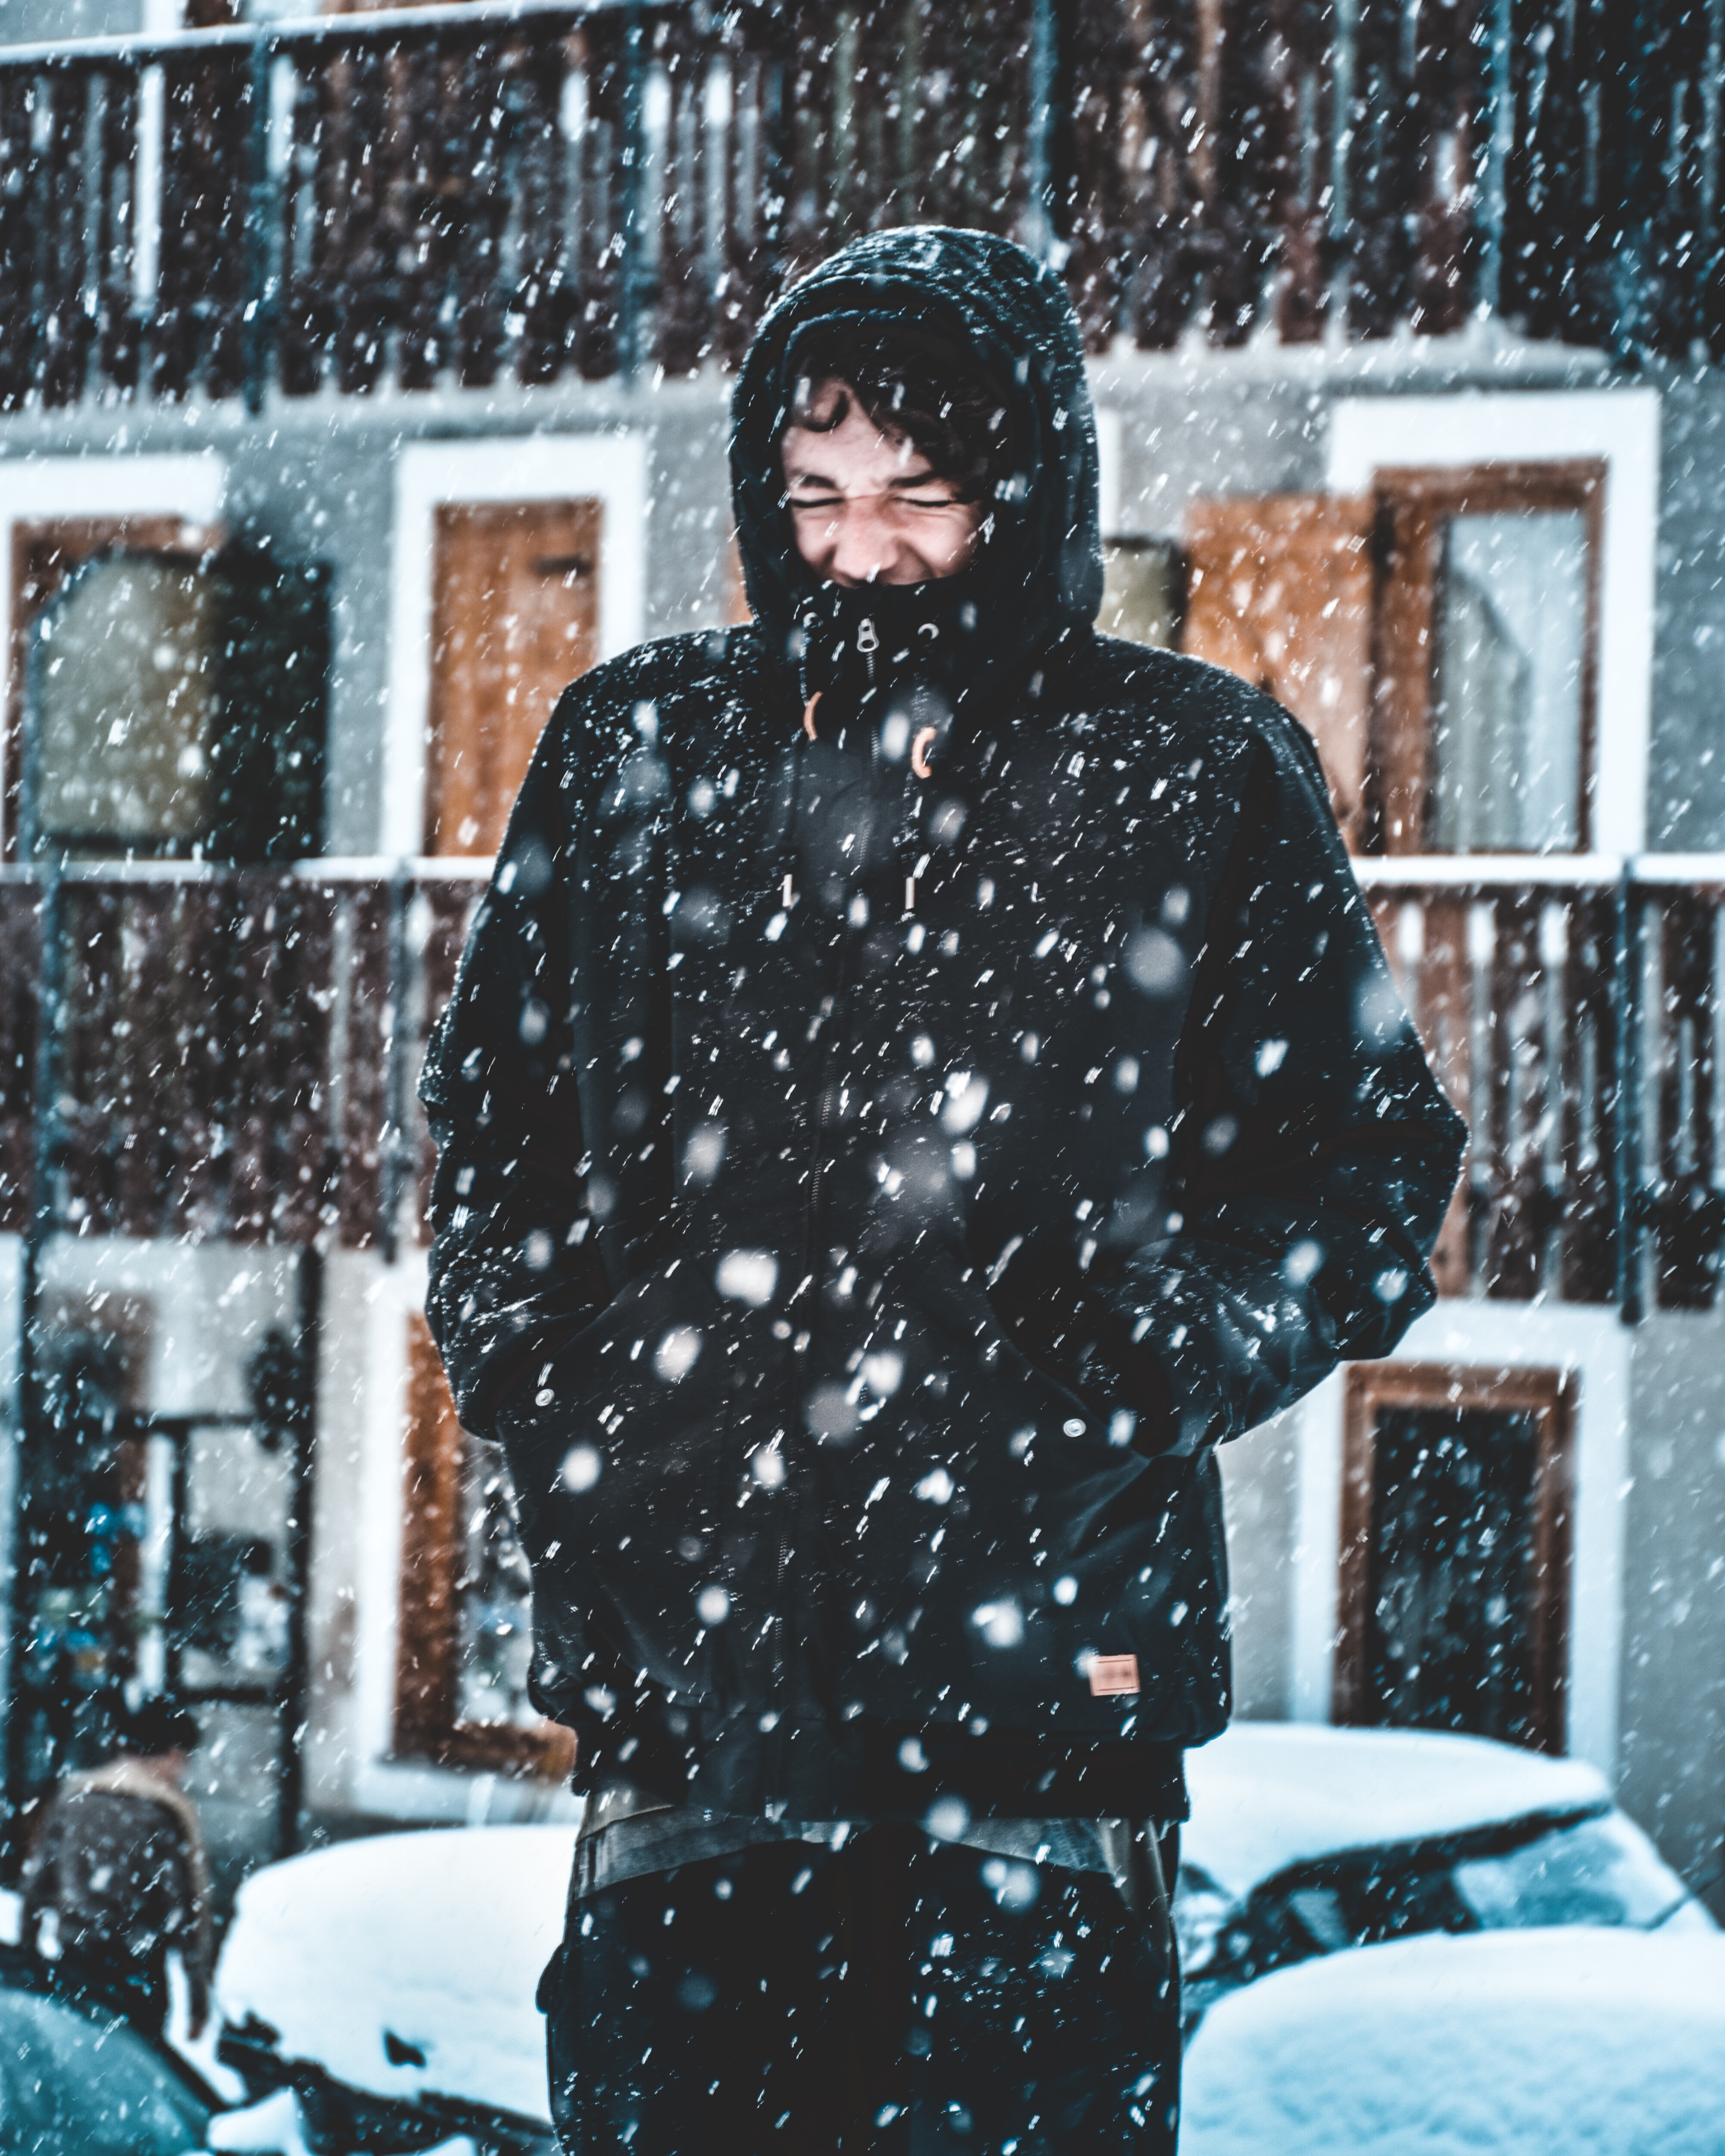 man in black hooded jacket during snow rain